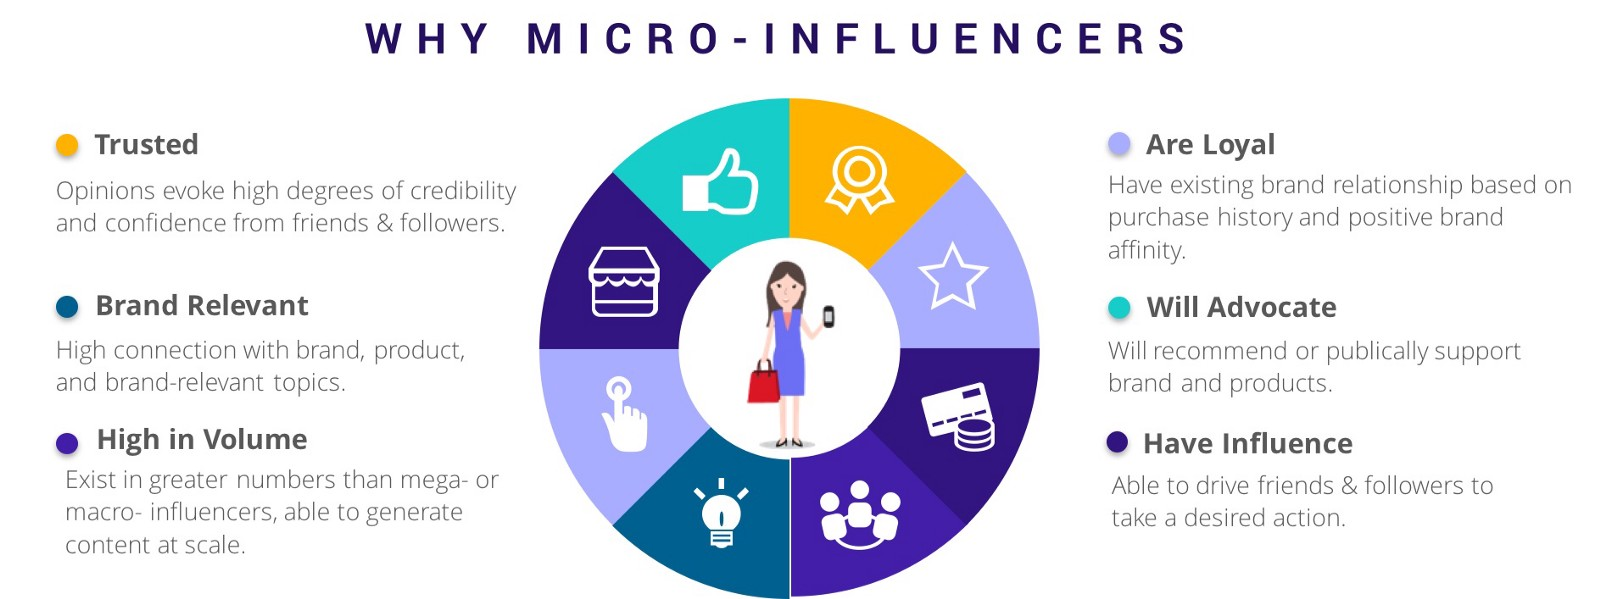 why micro-influencers